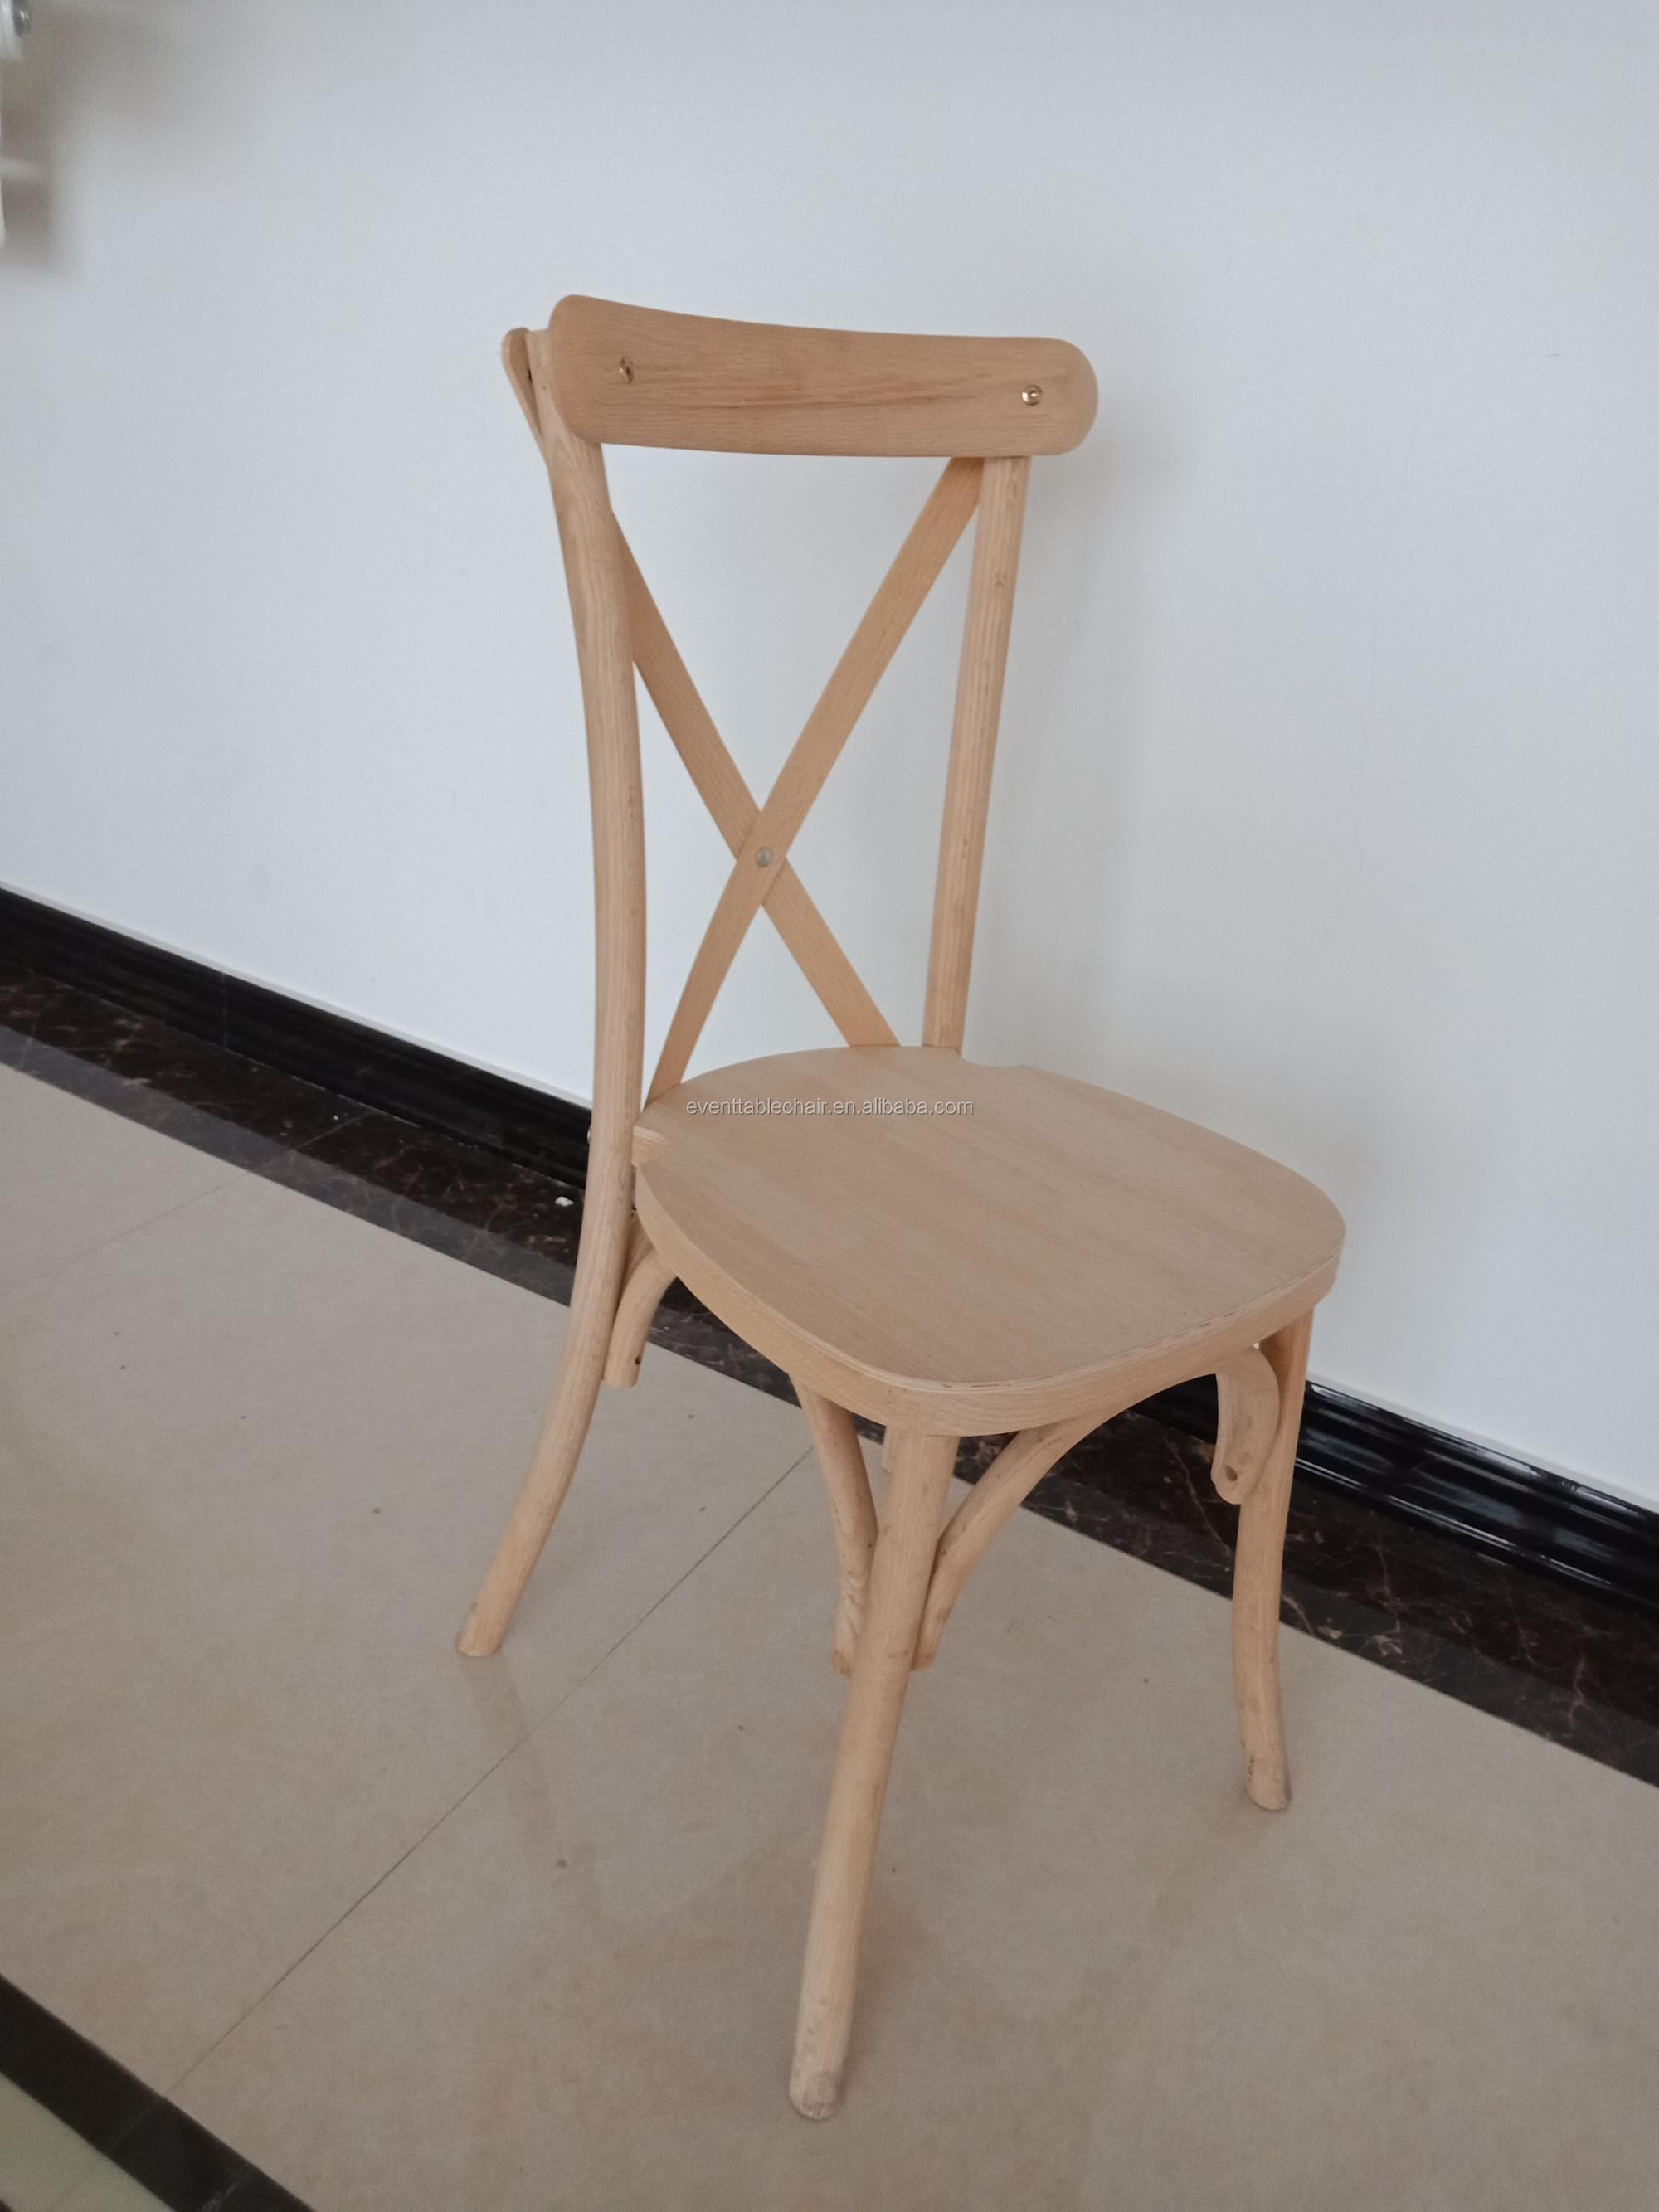 smaller X chair (3).jpg